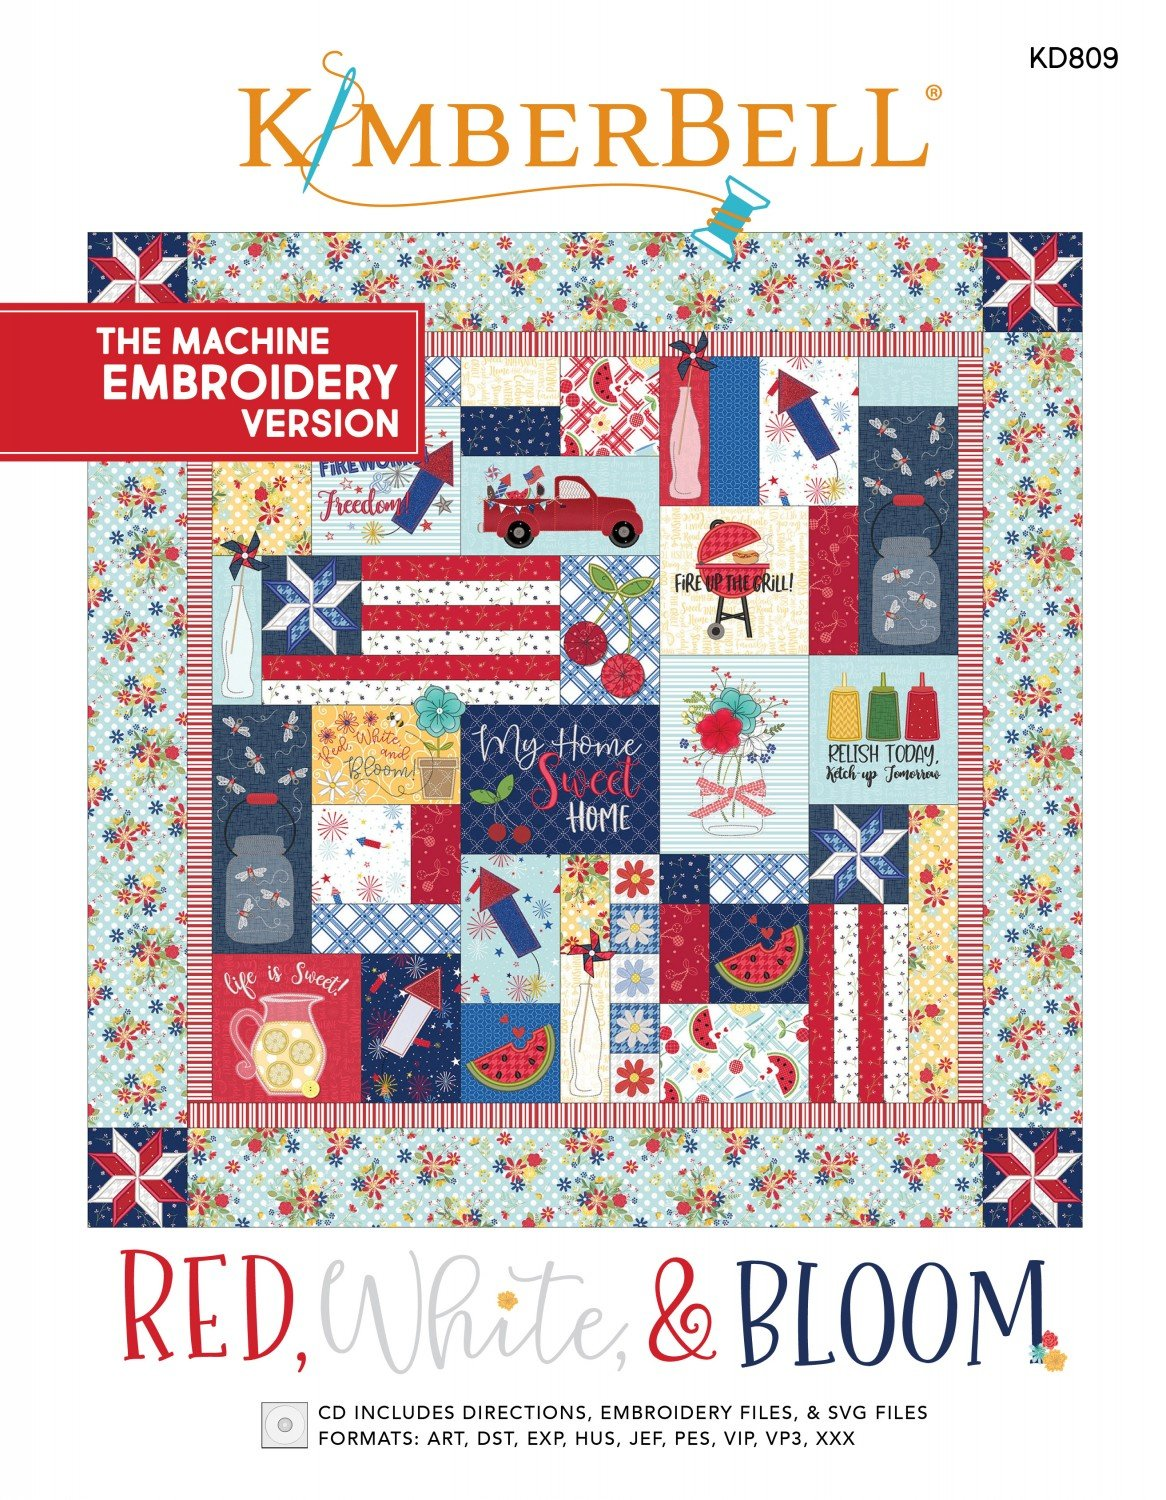 Kimberbell Red White & Bloom Machine Embroidery Book & CD for Quilt